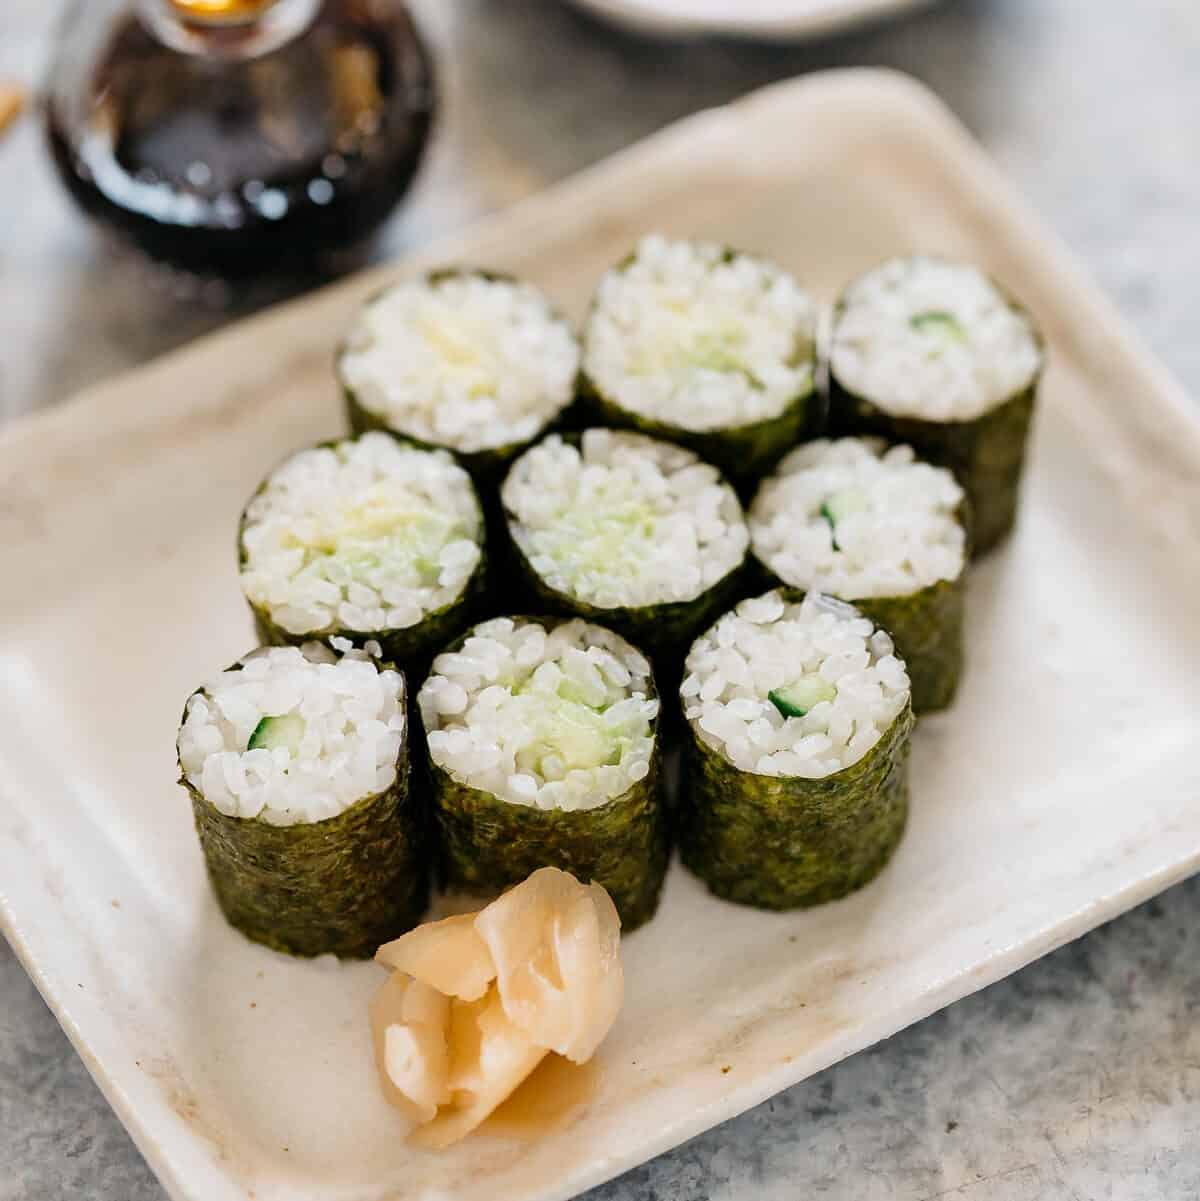 9 pieces of hosomaki rolls on a plate